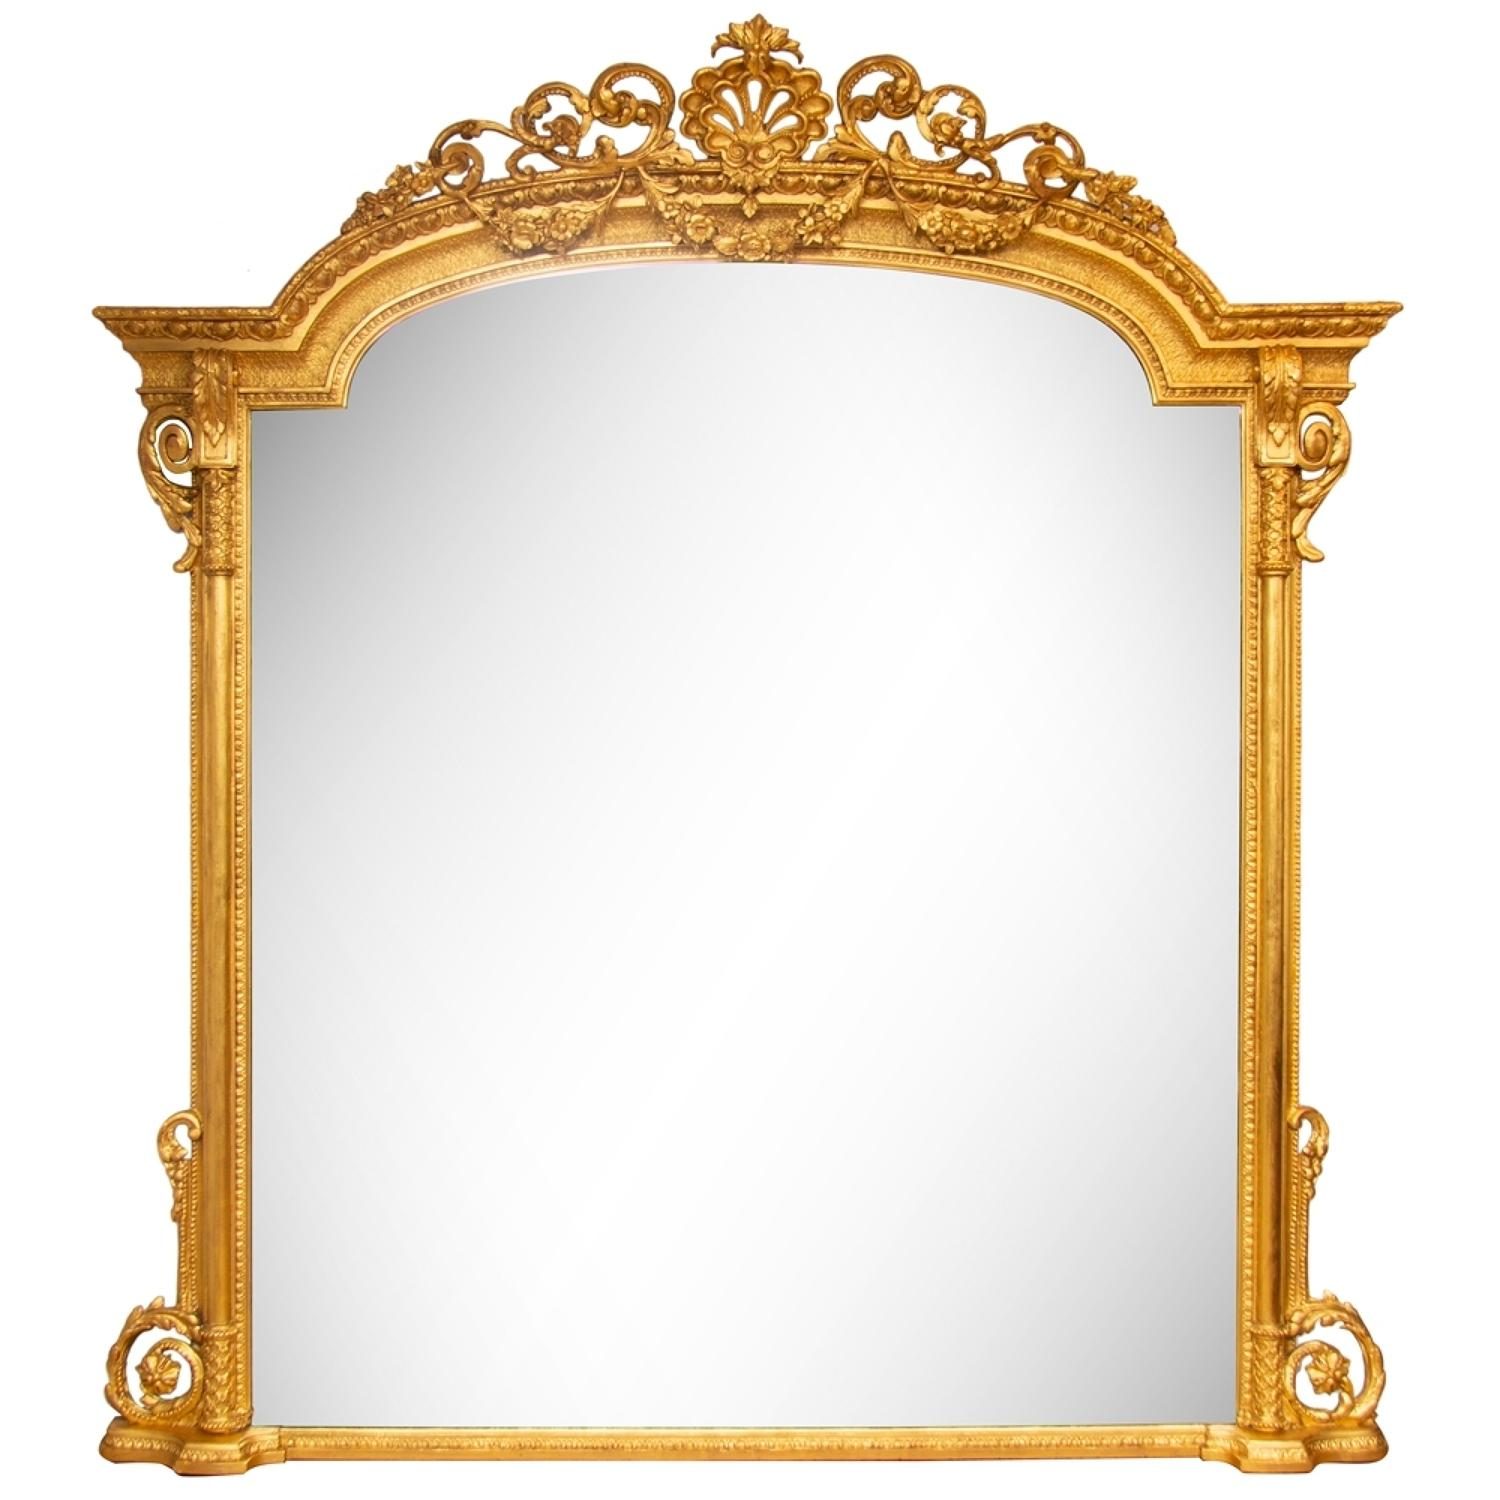 A large Antique gilded overmantle mirror.